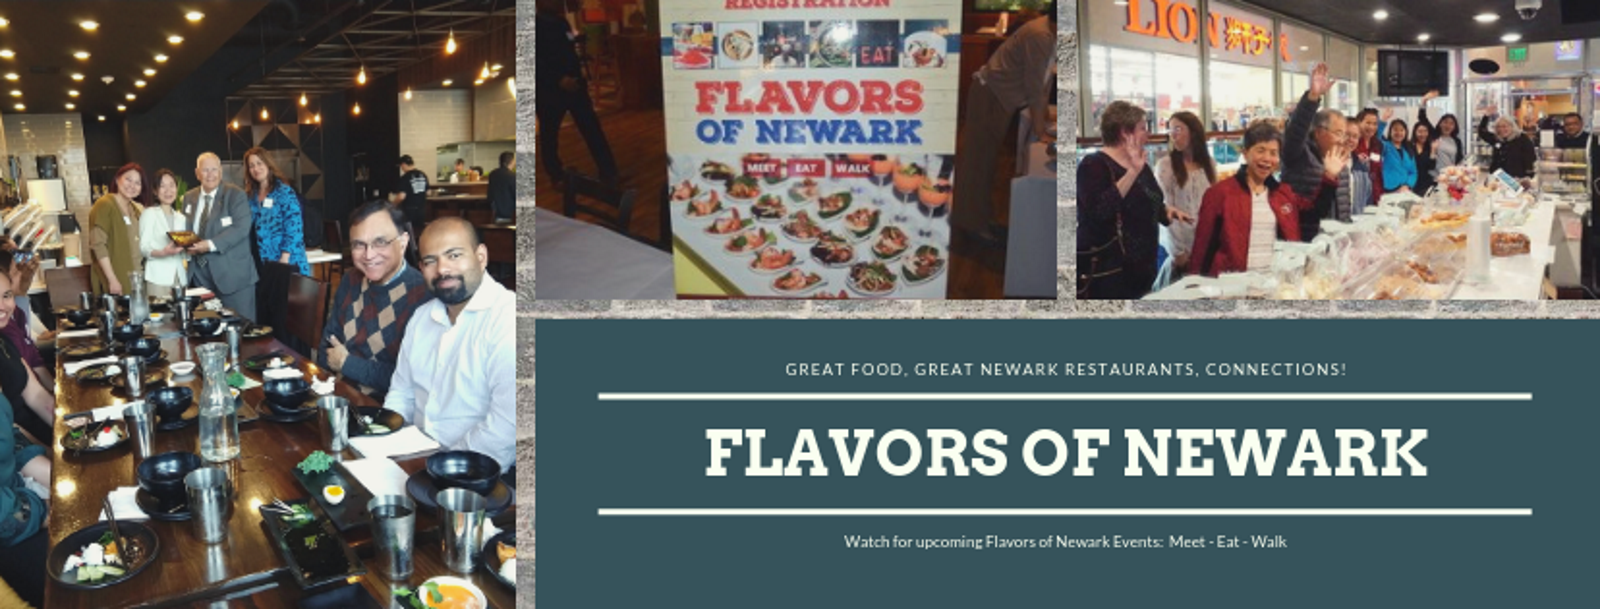 Flavors-of-Newark---Connect-Over-Food-1600px.png